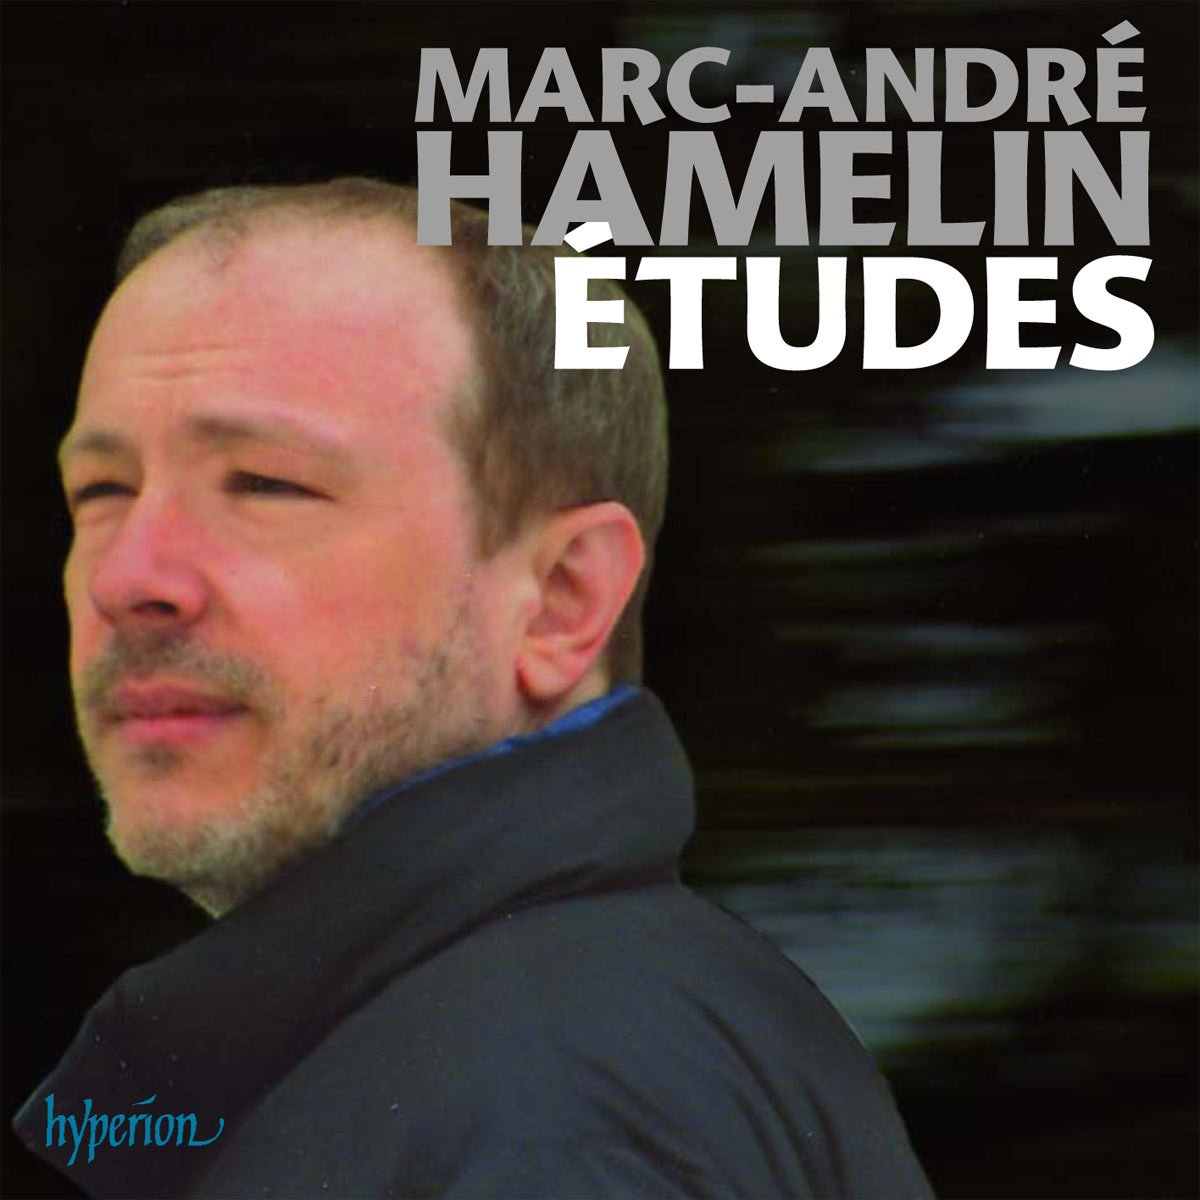 Hamelin: (12) Etudes / Little Nocturne / Con intissimo sentimento - excerpts / Theme and Variations (Cathy's Variations)